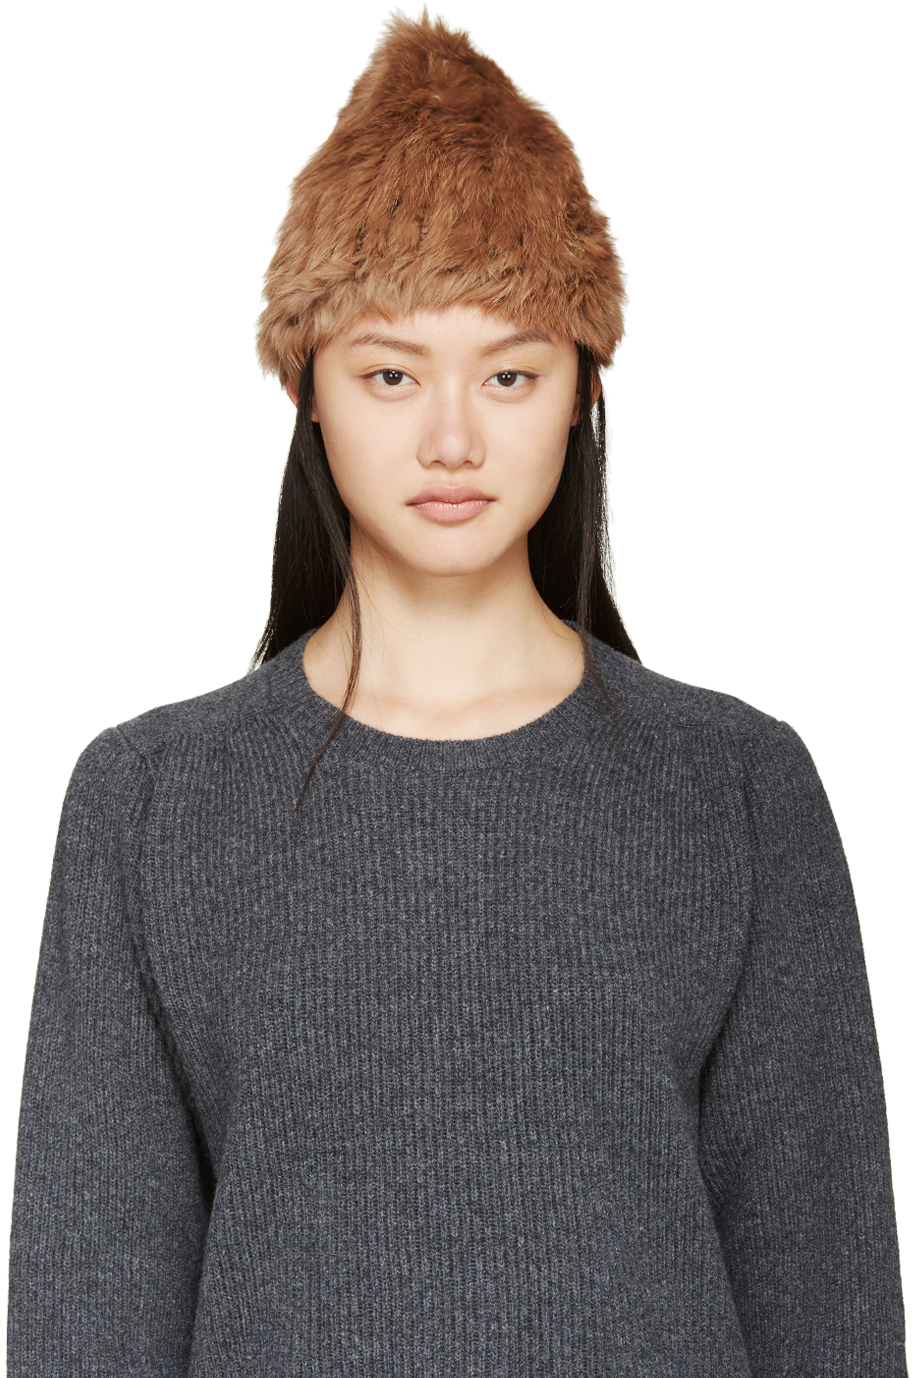 Lyst - Meteo by Yves Salomon Brown Knit Rabbit Fur Toque in Brown c0e8aa82eb9c